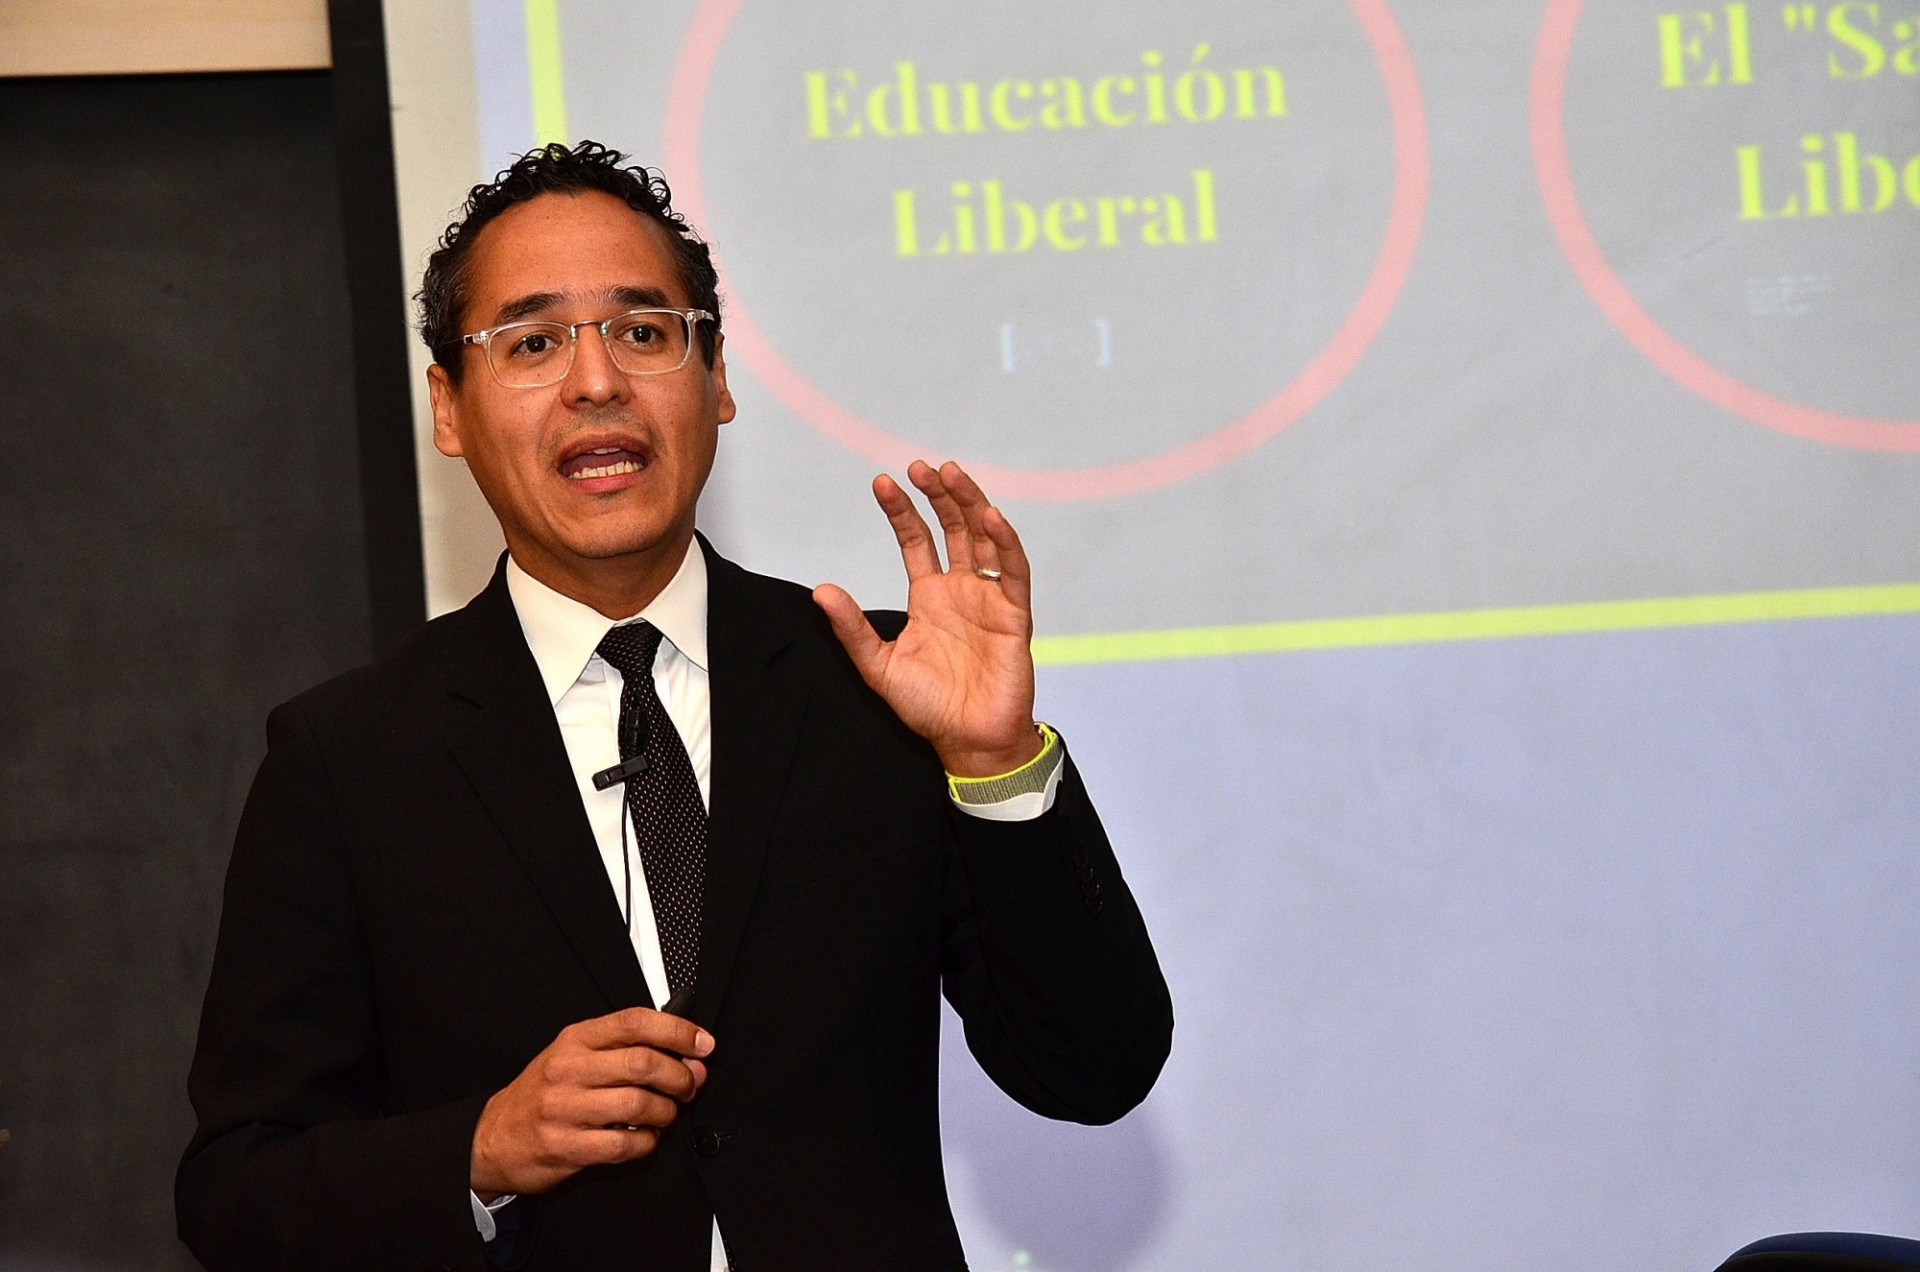 Director of Columbia's Core Curriculum Highlights Importance of Liberal Arts